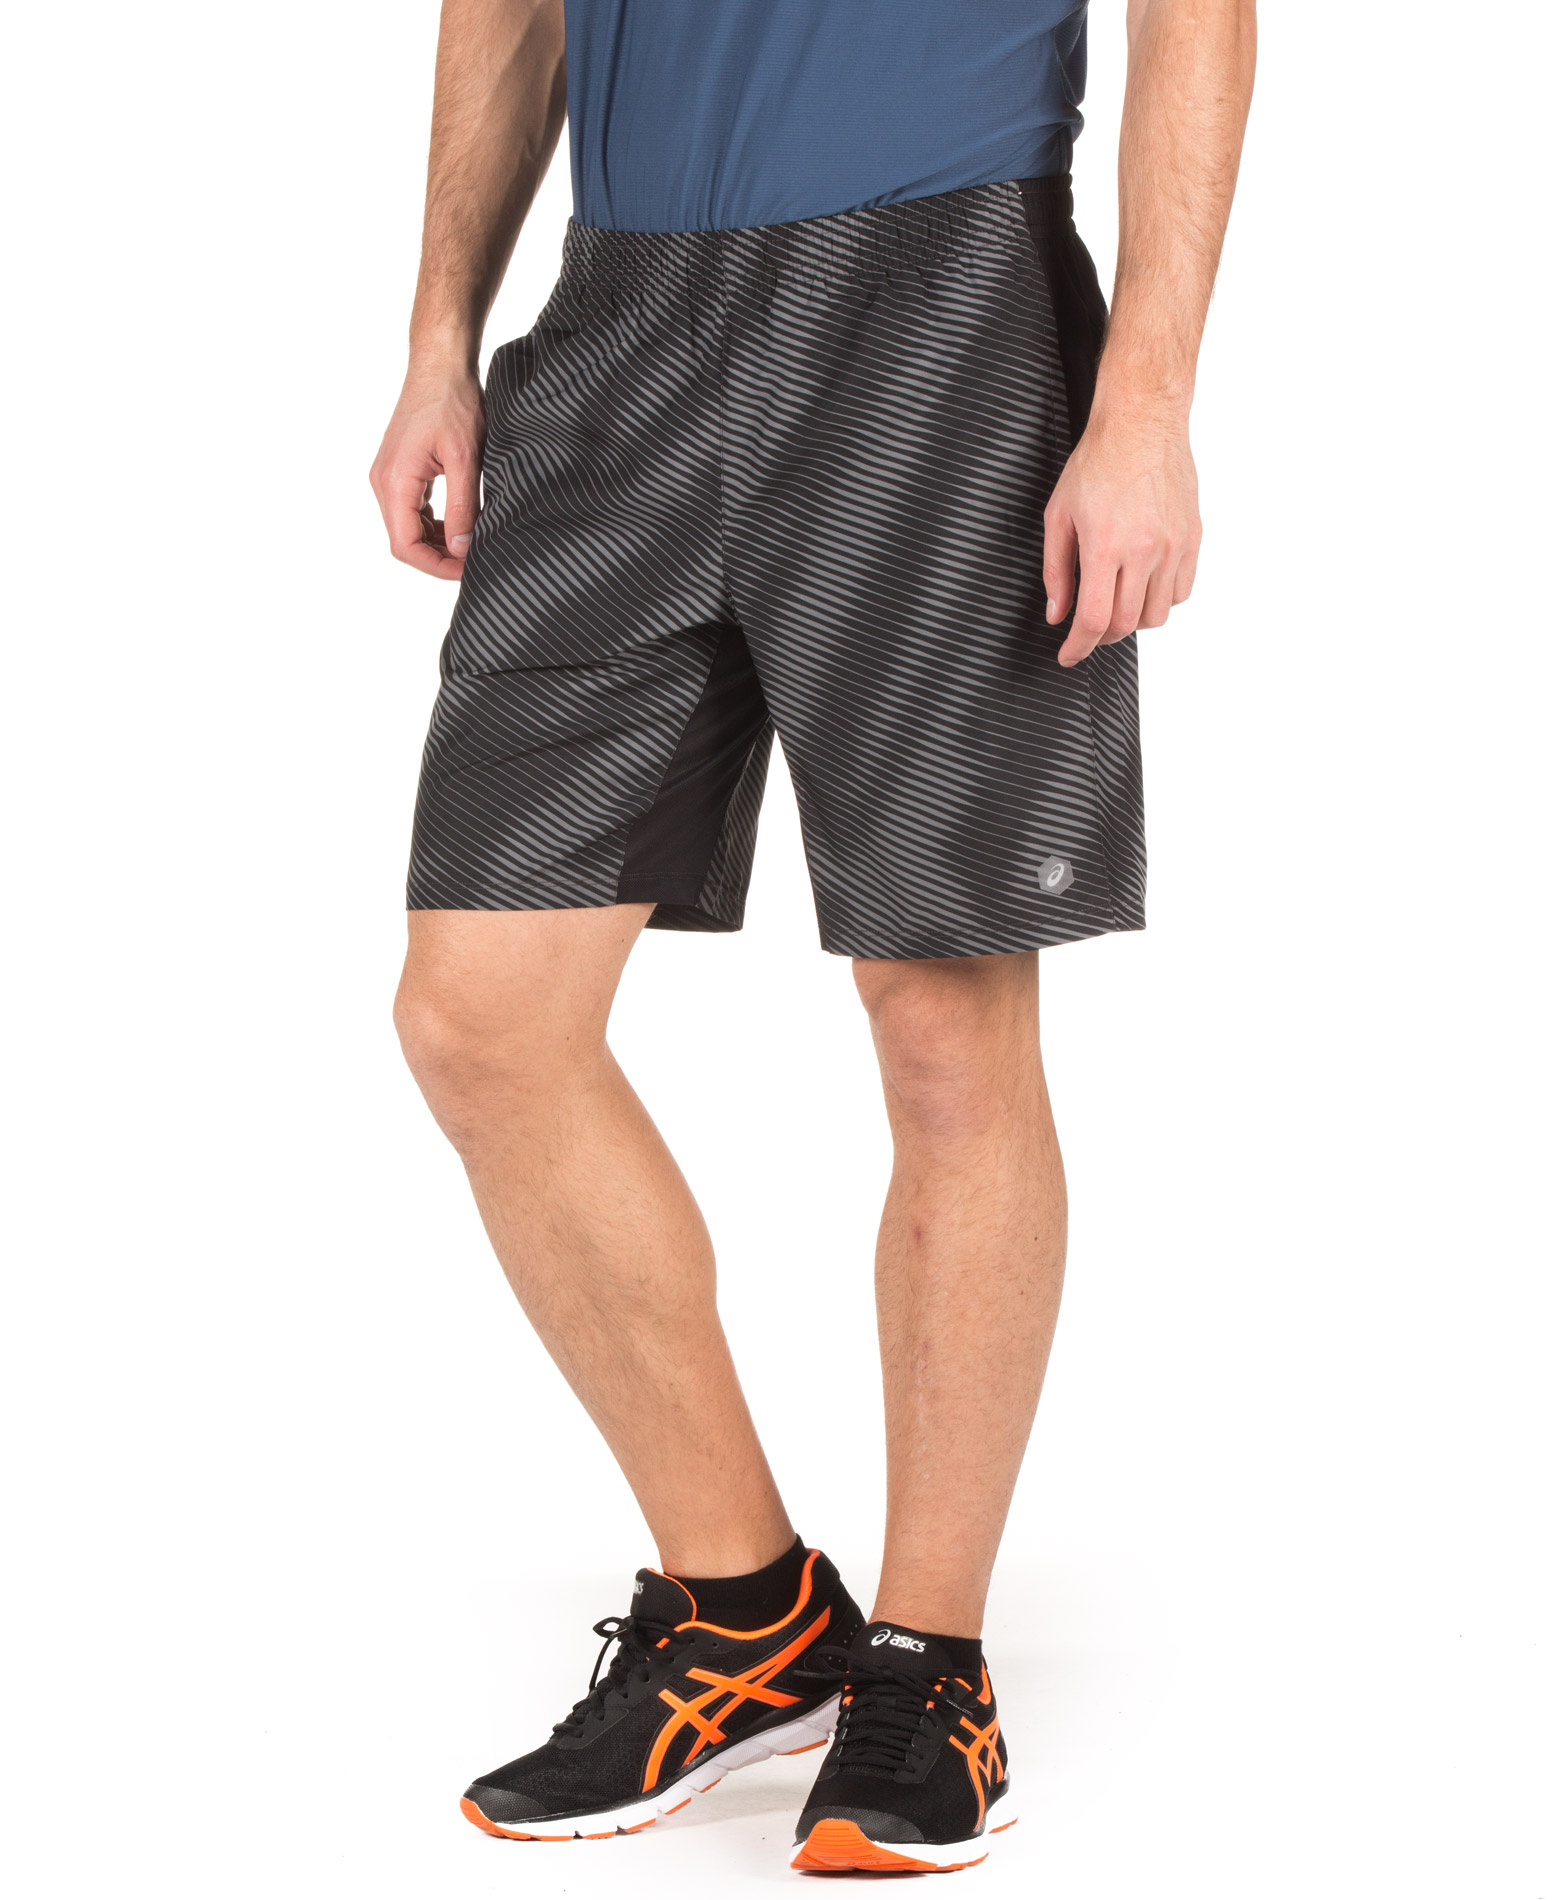 ASICS TRUE FRFM GPX SHORT 155212-1283 Ανθρακί